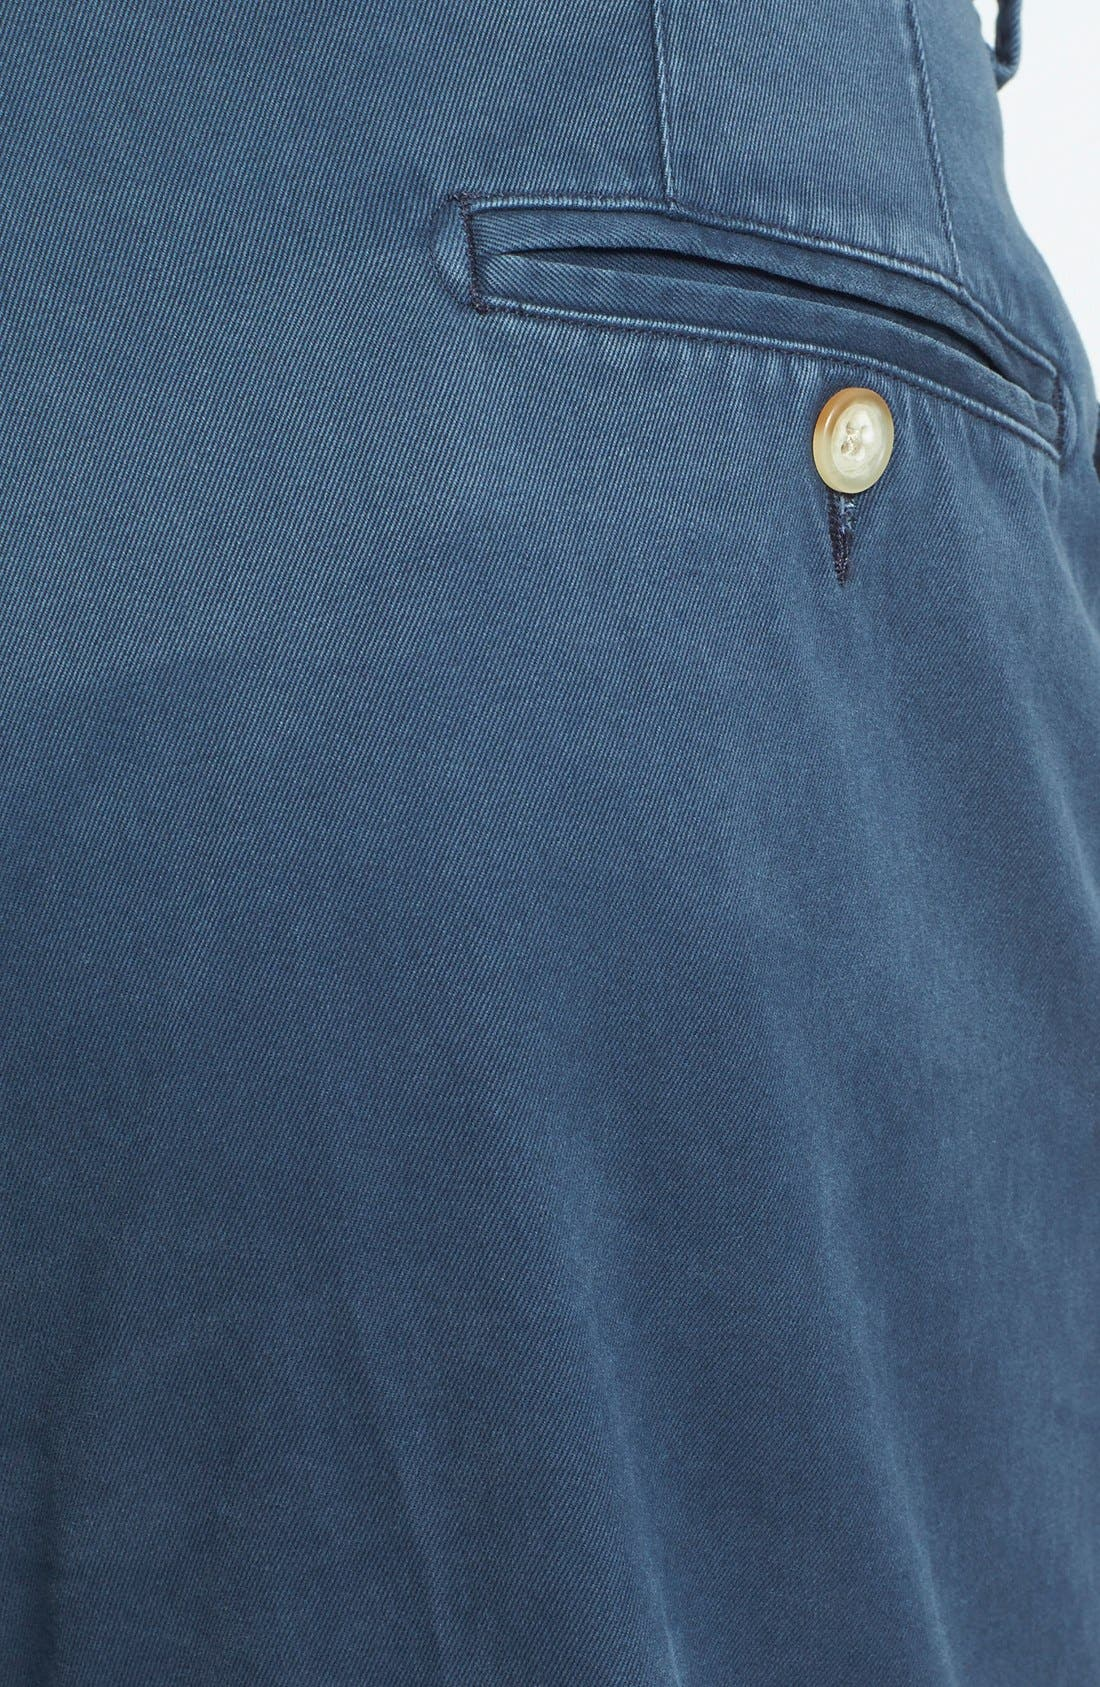 Garment Washed Twill Pants,                             Alternate thumbnail 63, color,